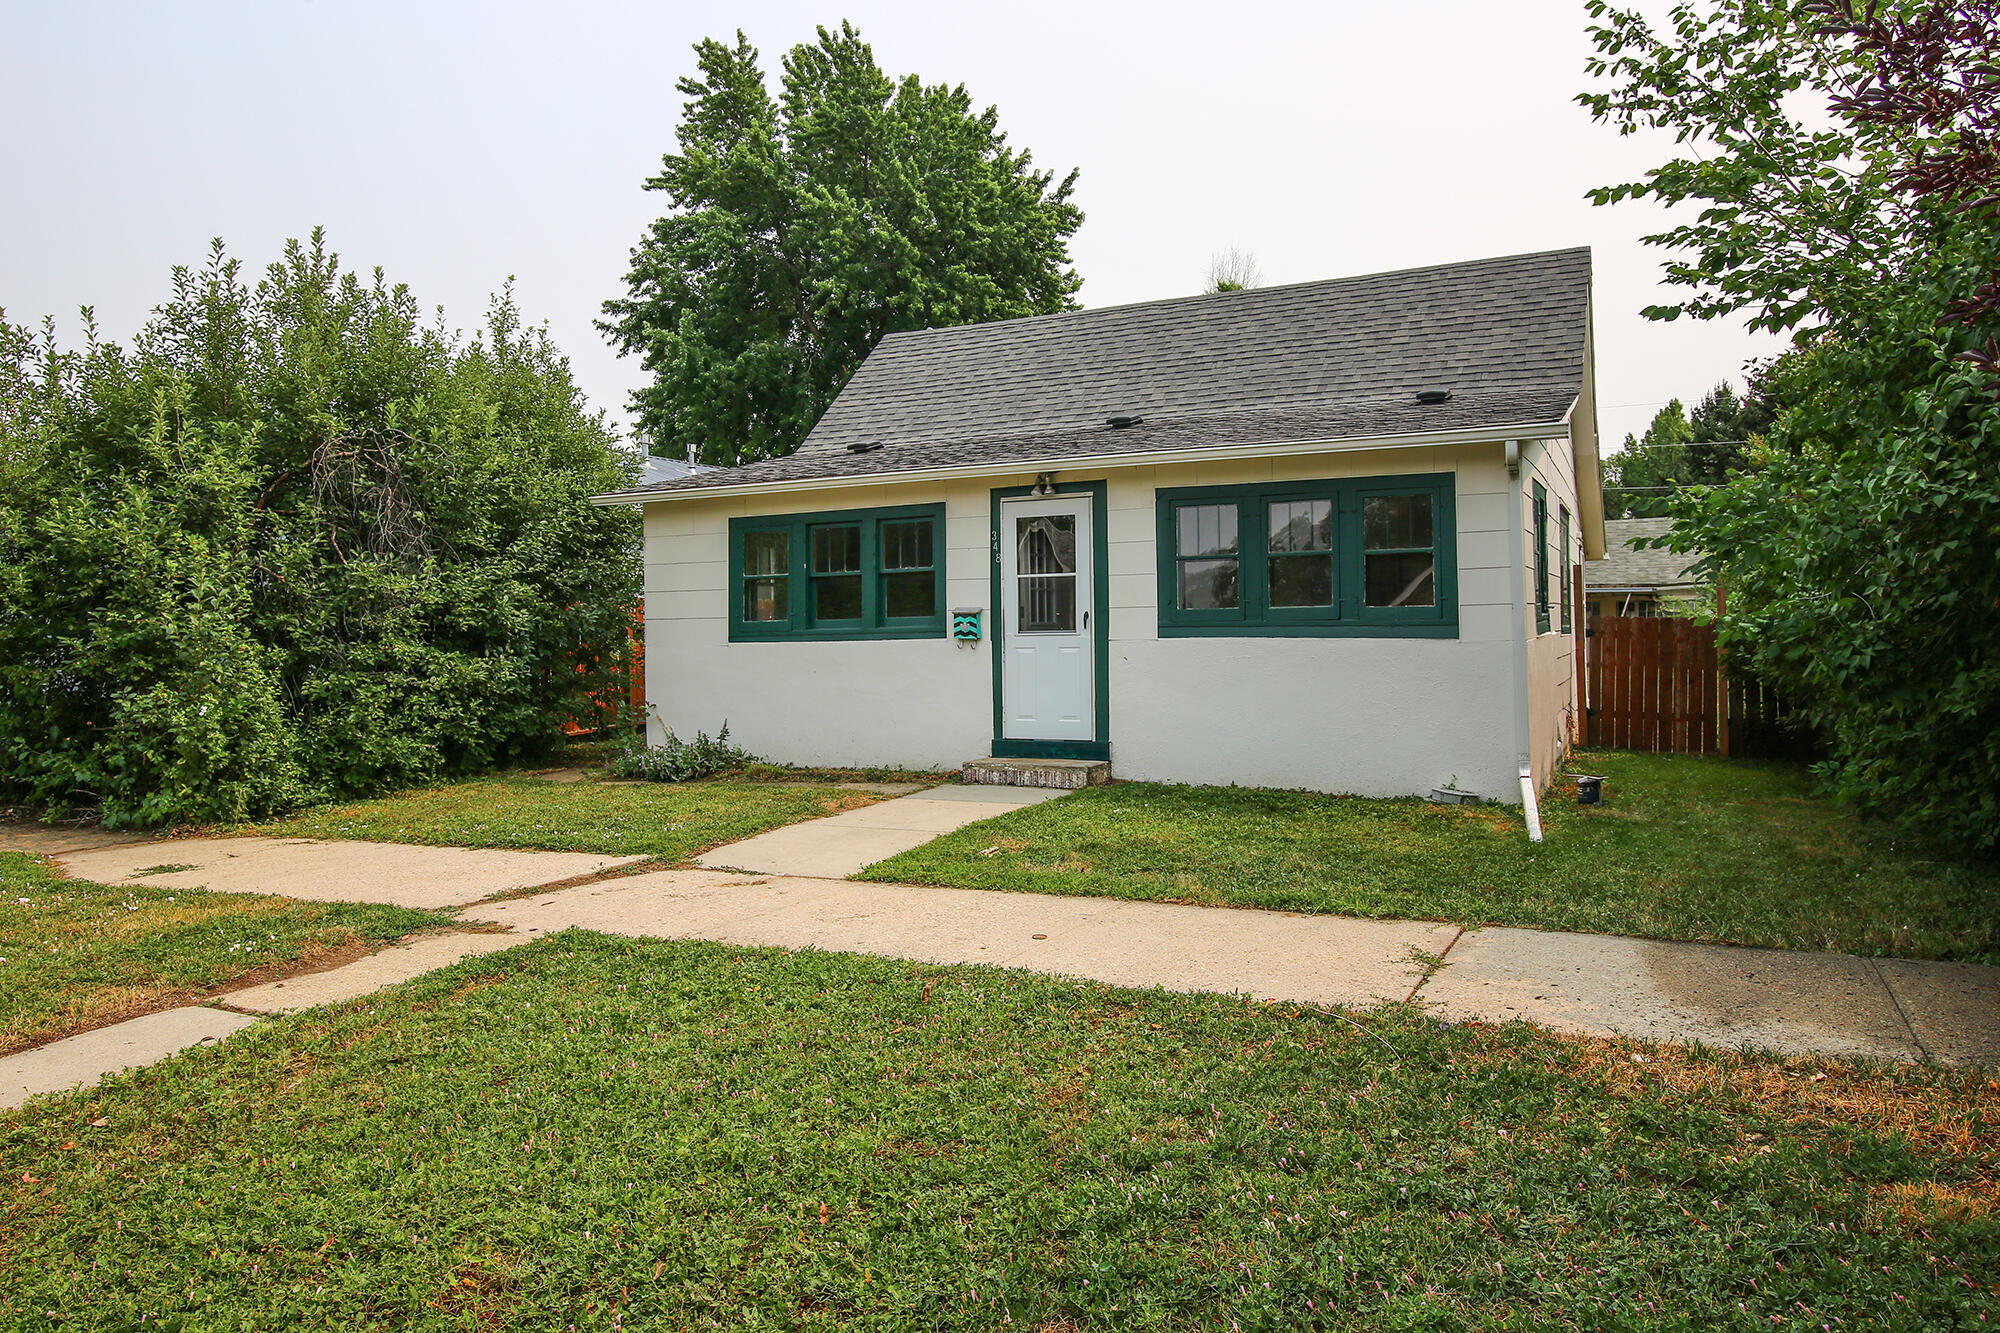 348 E 2nd Street, Sheridan, Wyoming 82801, 3 Bedrooms Bedrooms, ,1 BathroomBathrooms,Residential,For Sale,2nd,21-822